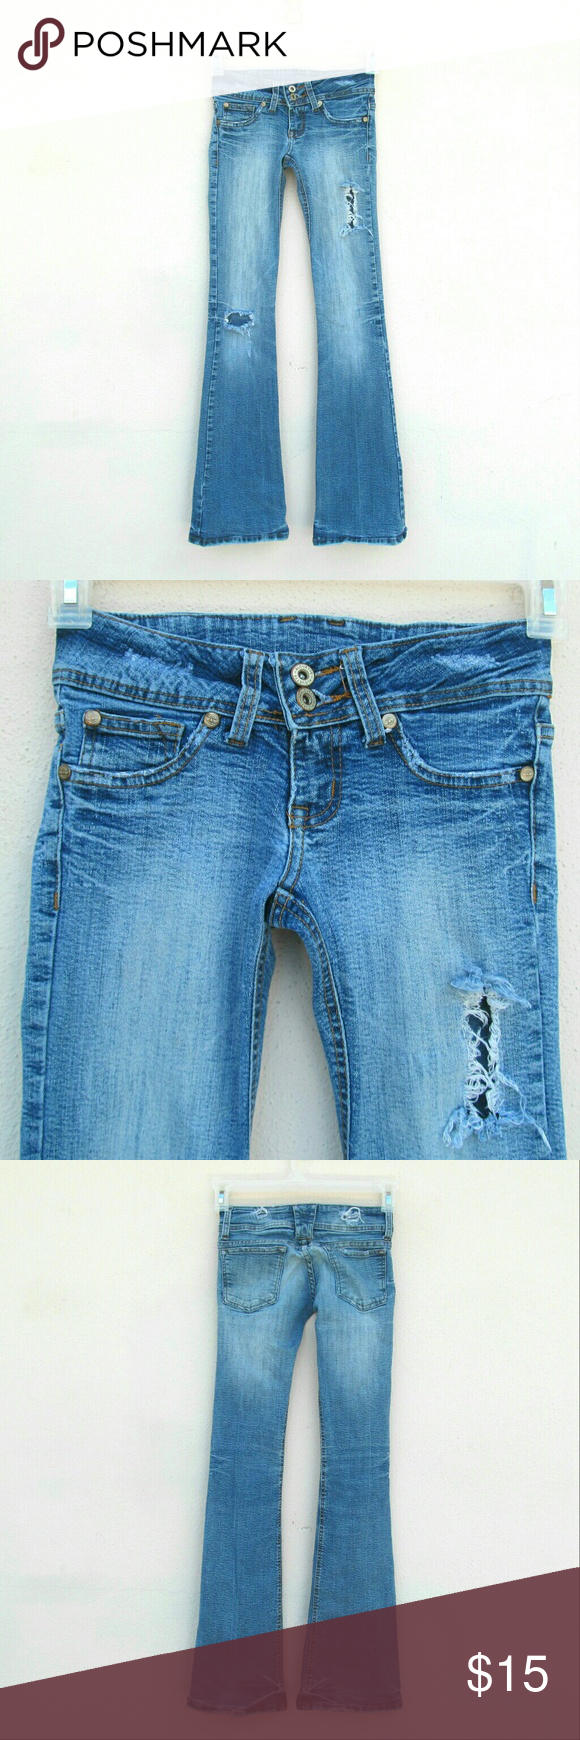 Alouette Denim Jeans Pants Size 2 It seems to run small. Like I personally think it will fit a 0 or 1 best Alouette Jeans